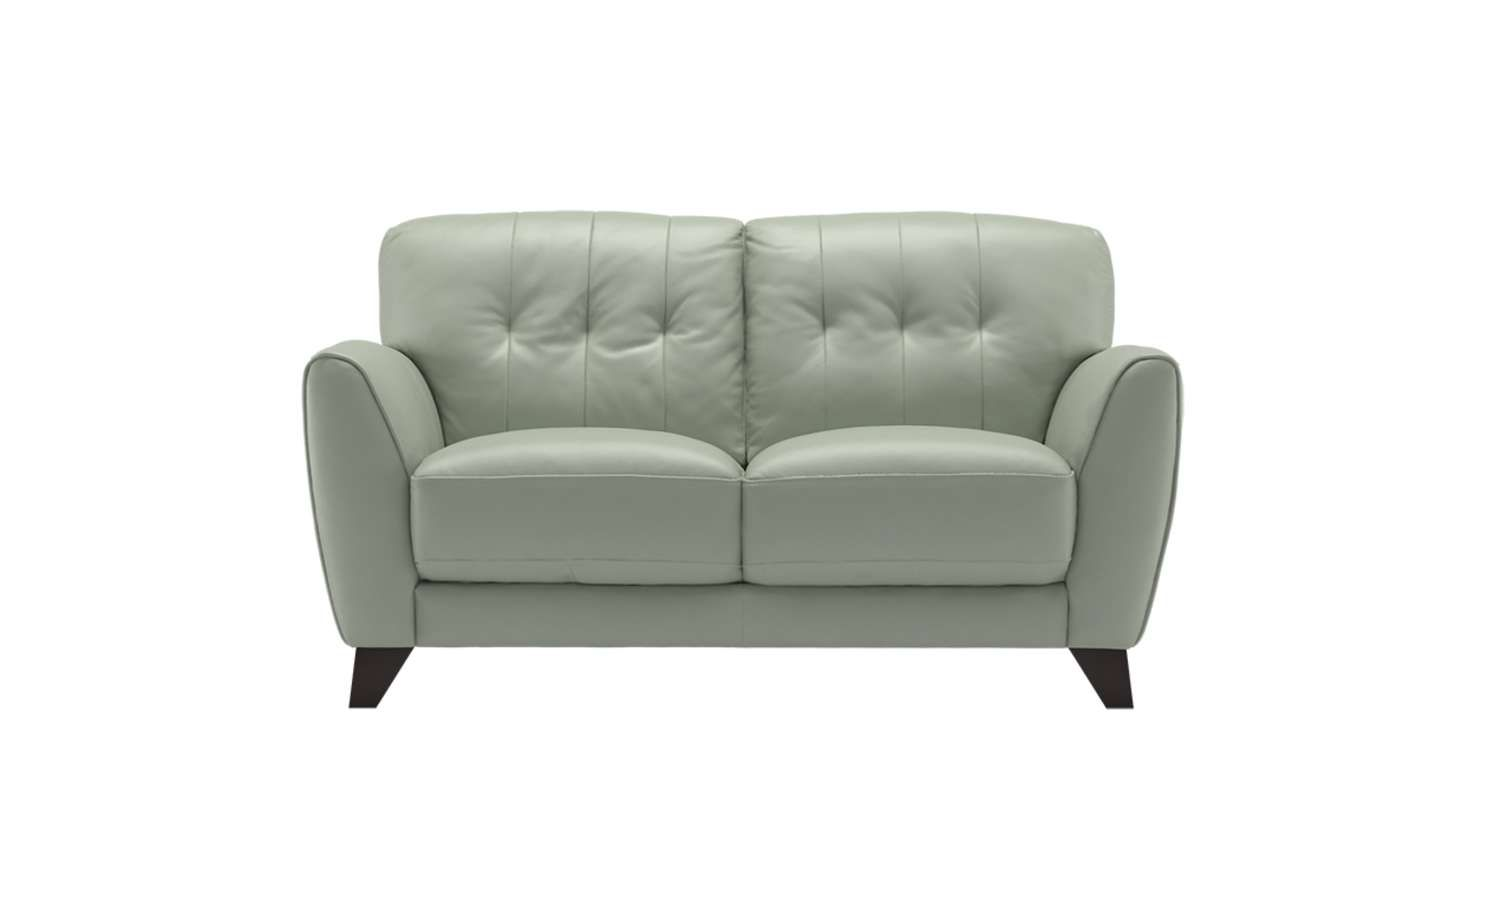 Sofology Is Feeling At Home On A Sofa You Love.